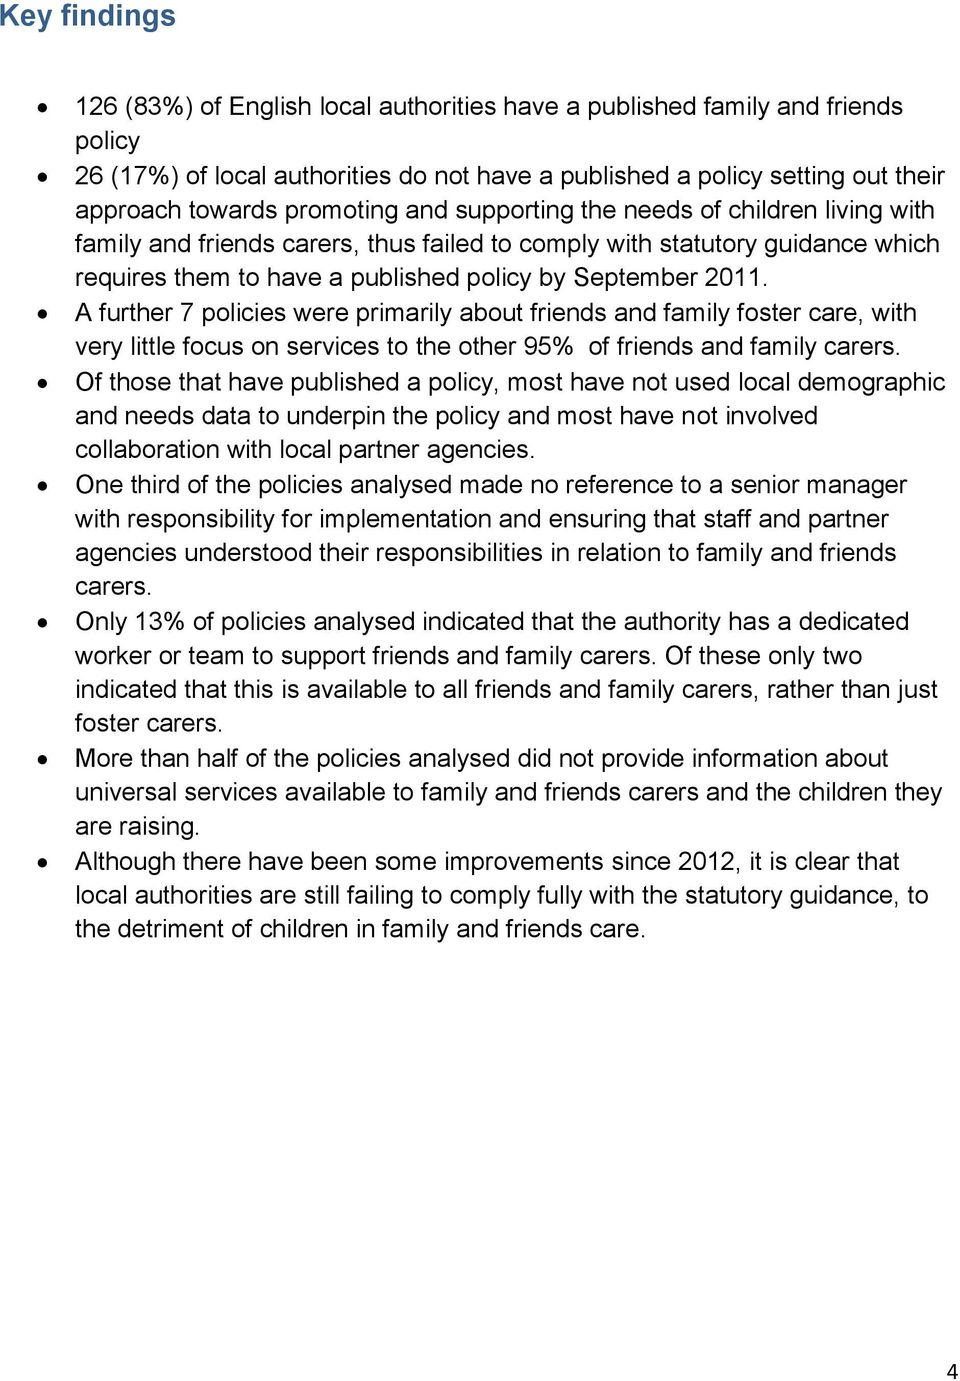 A further 7 policies were primarily about friends and family foster care, with very little focus on services to the other 95% of friends and family carers.